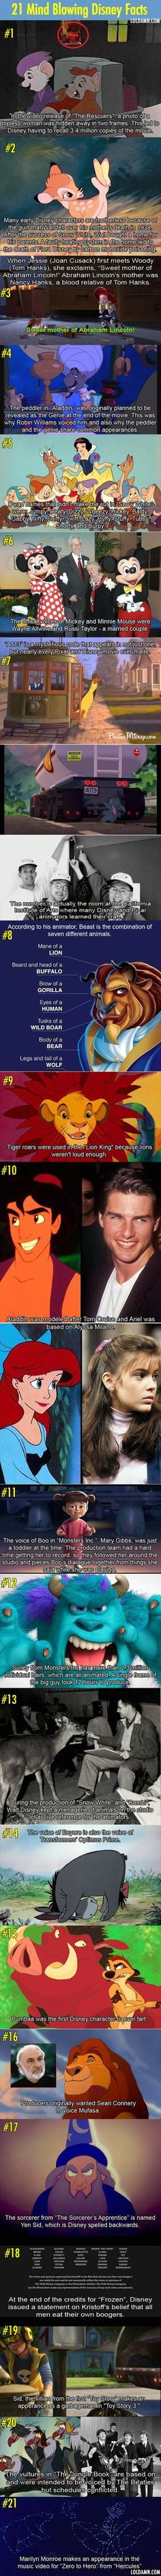 What if you know some secrets hidden behind the scene of Disney movies. They're going to blow your mind!